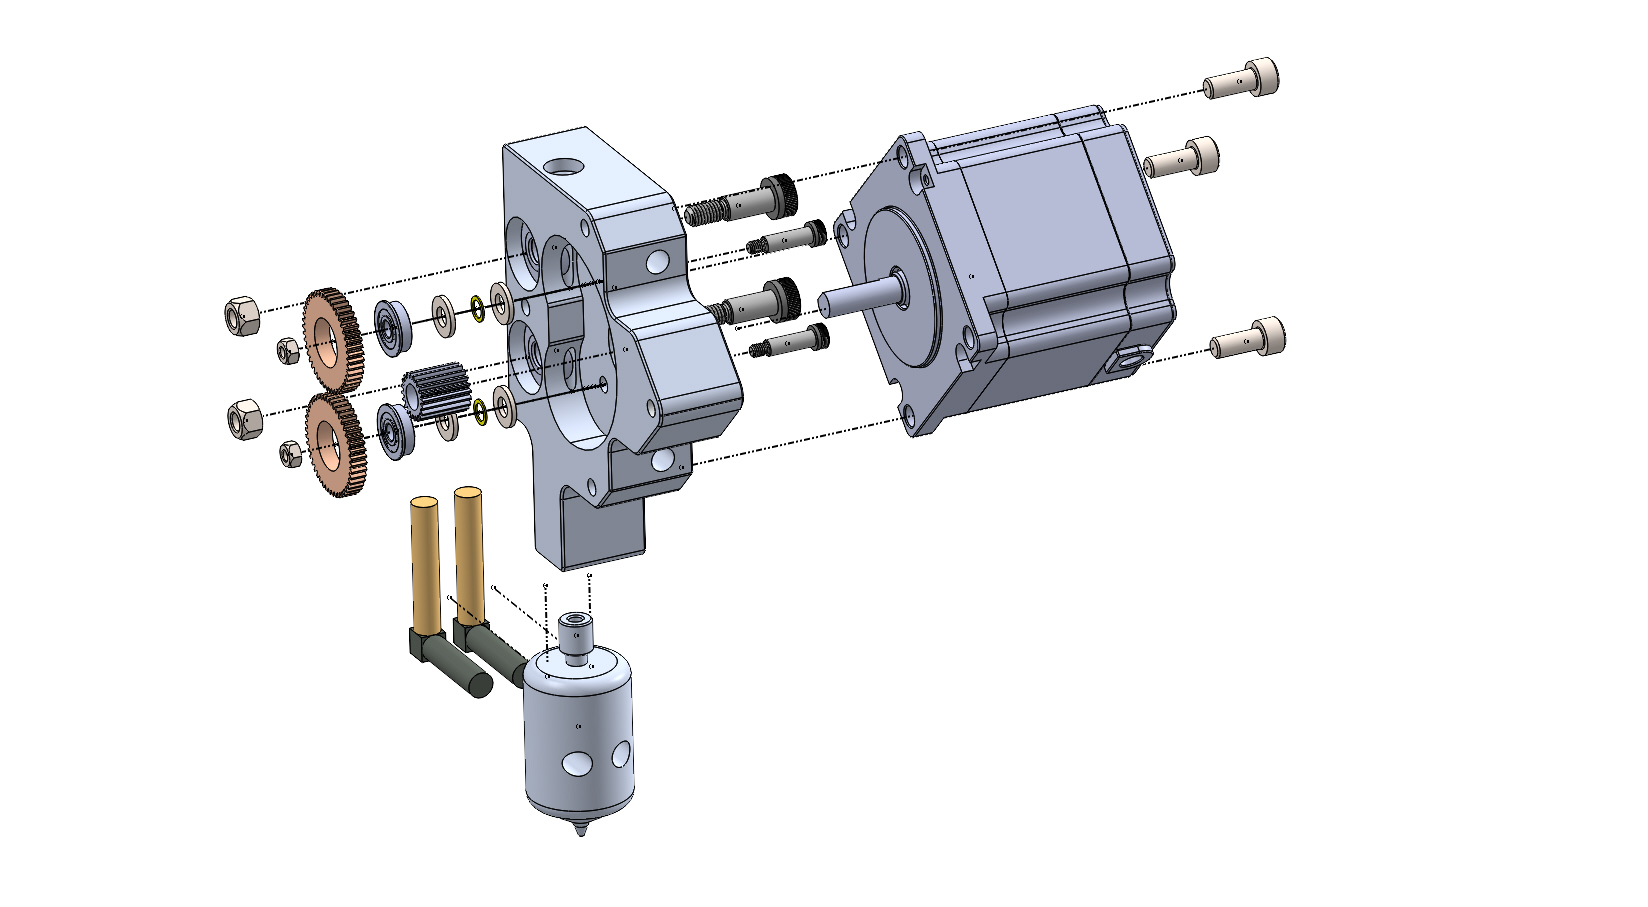 Building Customized Industrial-scale Additive Manufacturing Platforms with SOLIDWORKS